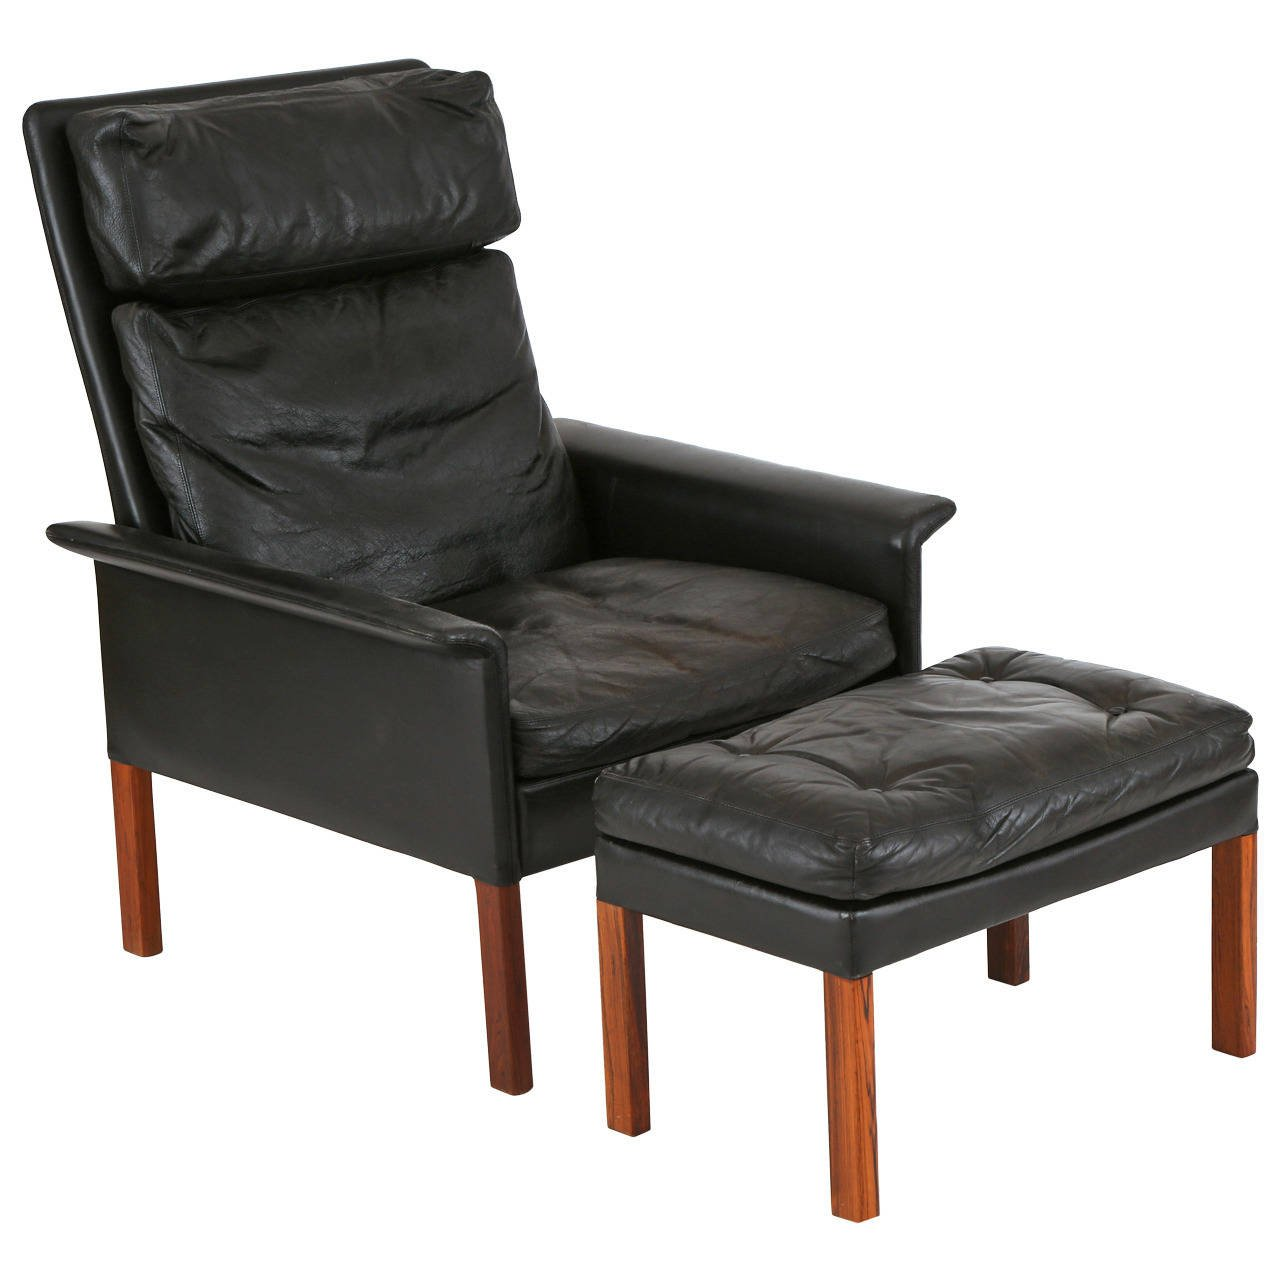 Leather Chairs With Ottoman Hans Olsen Leather And Rosewood Lounge Chair And Ottoman